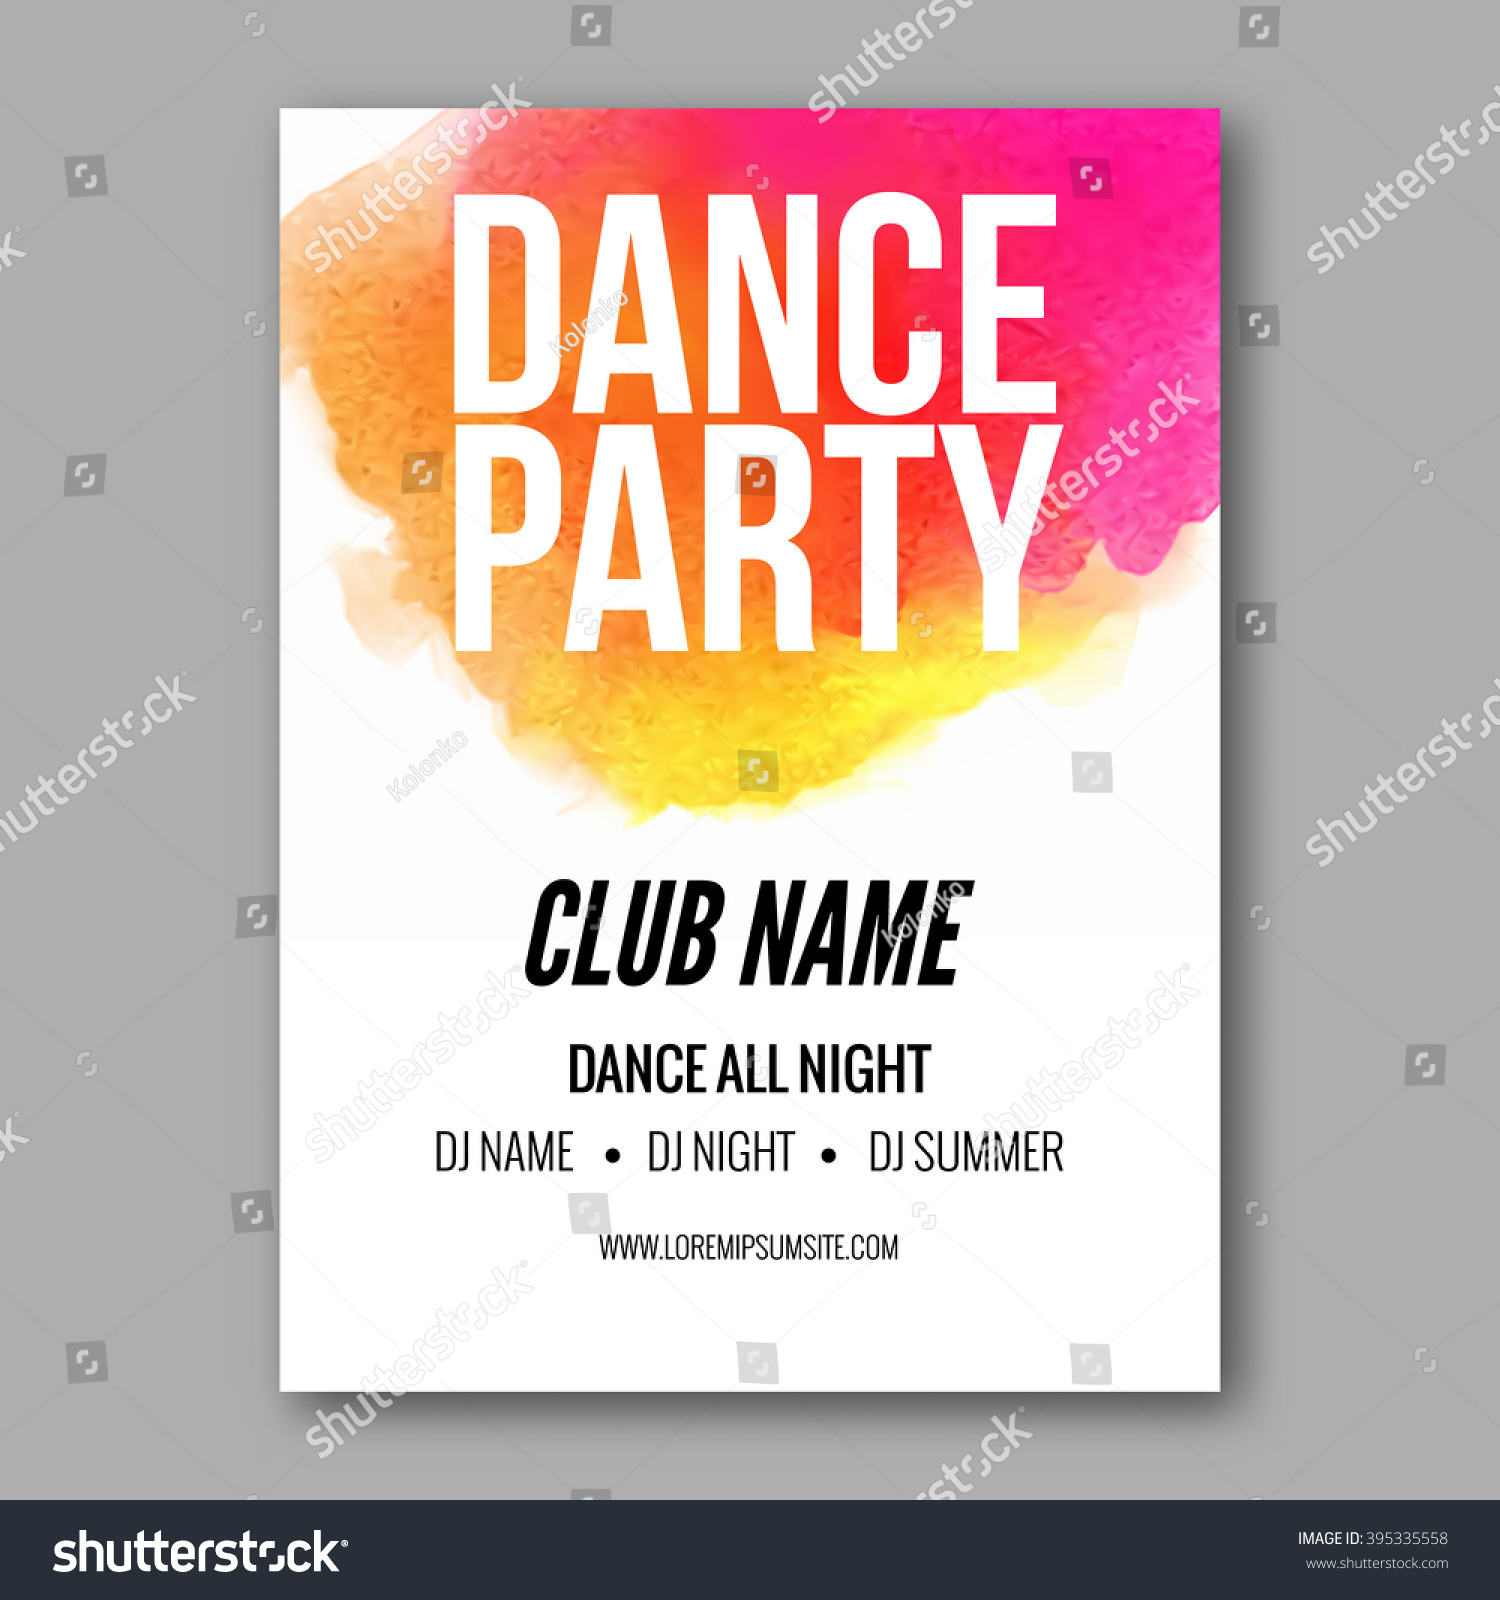 Dance Party Poster Template. Night Dance Party flyer. DJ session ...